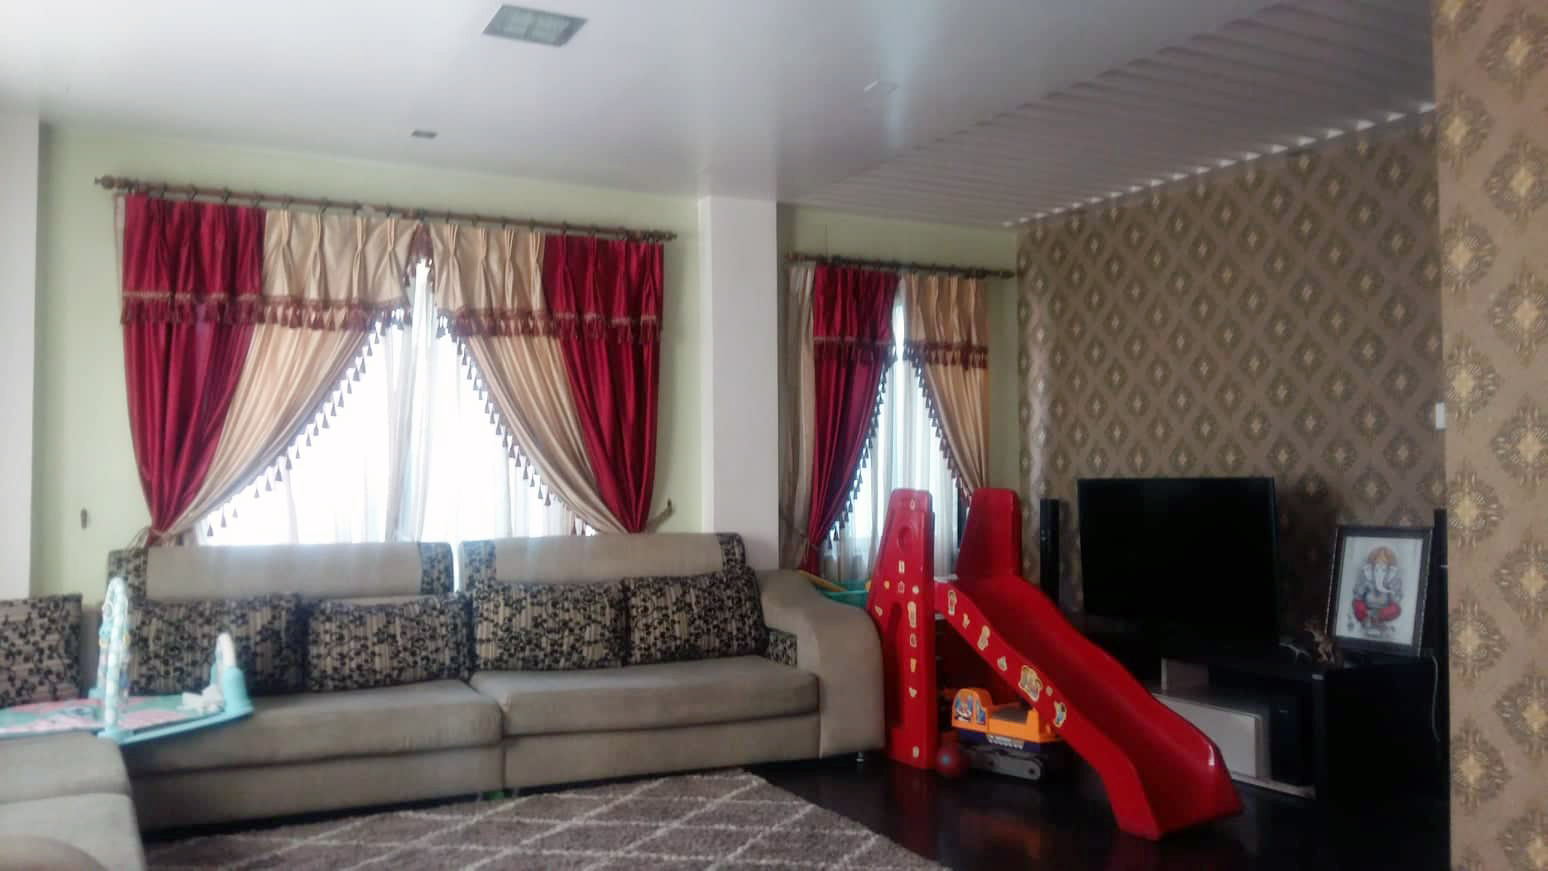 House_for_sale_at_imadol_(10).jpg